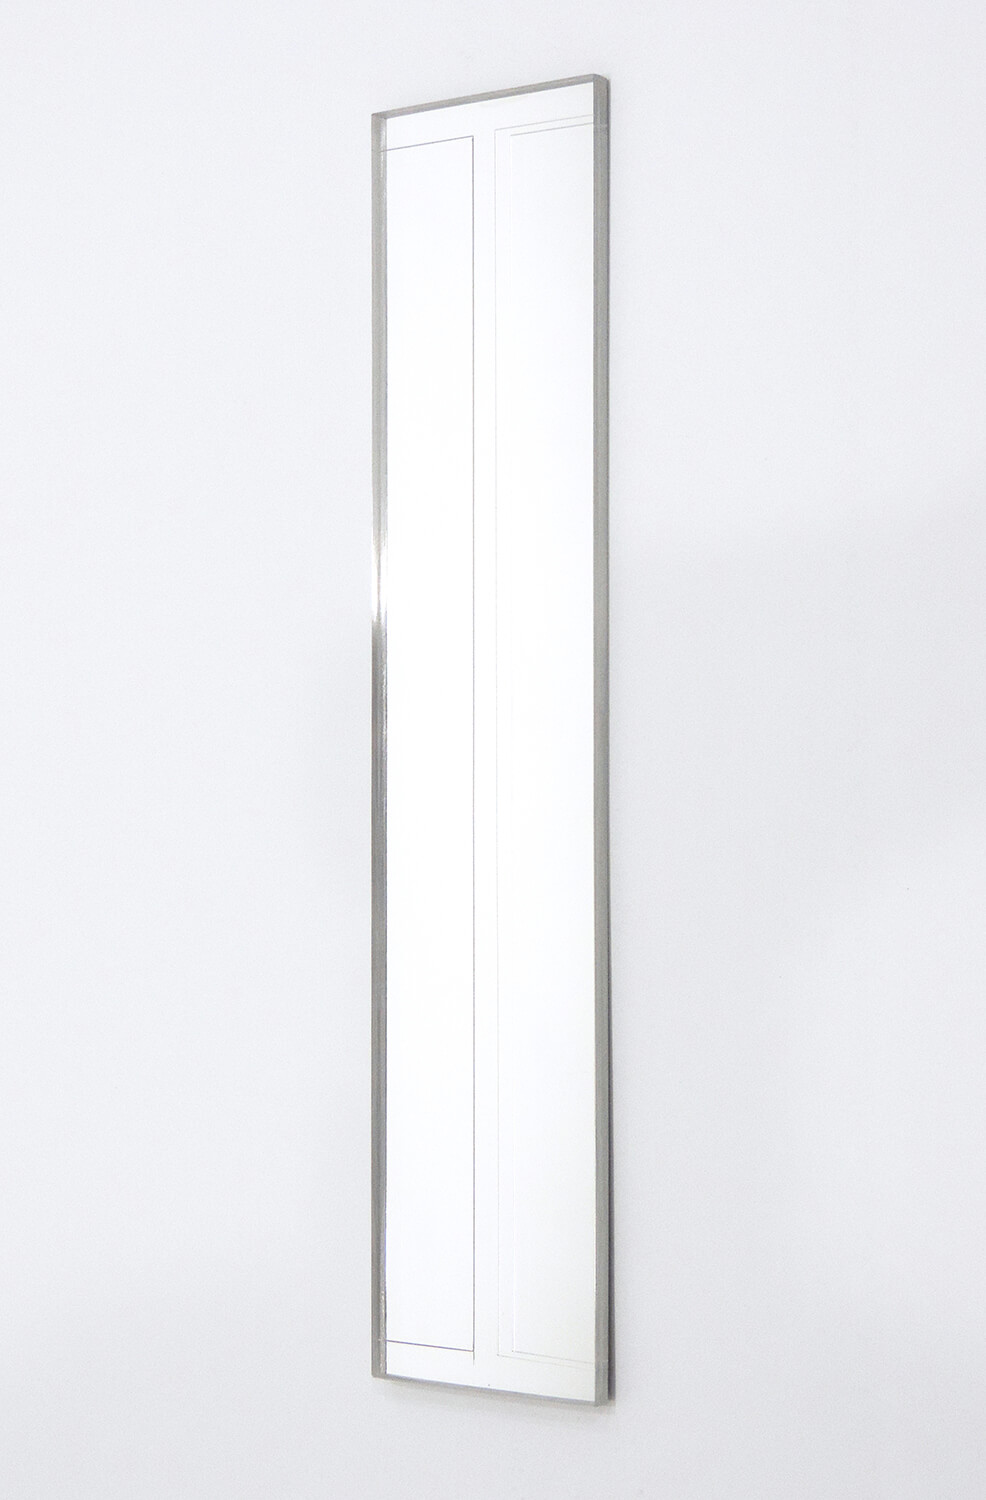 <strong>Untitled </strong><br>Acrylic mirror 295 x 60 x 6 mm 2013